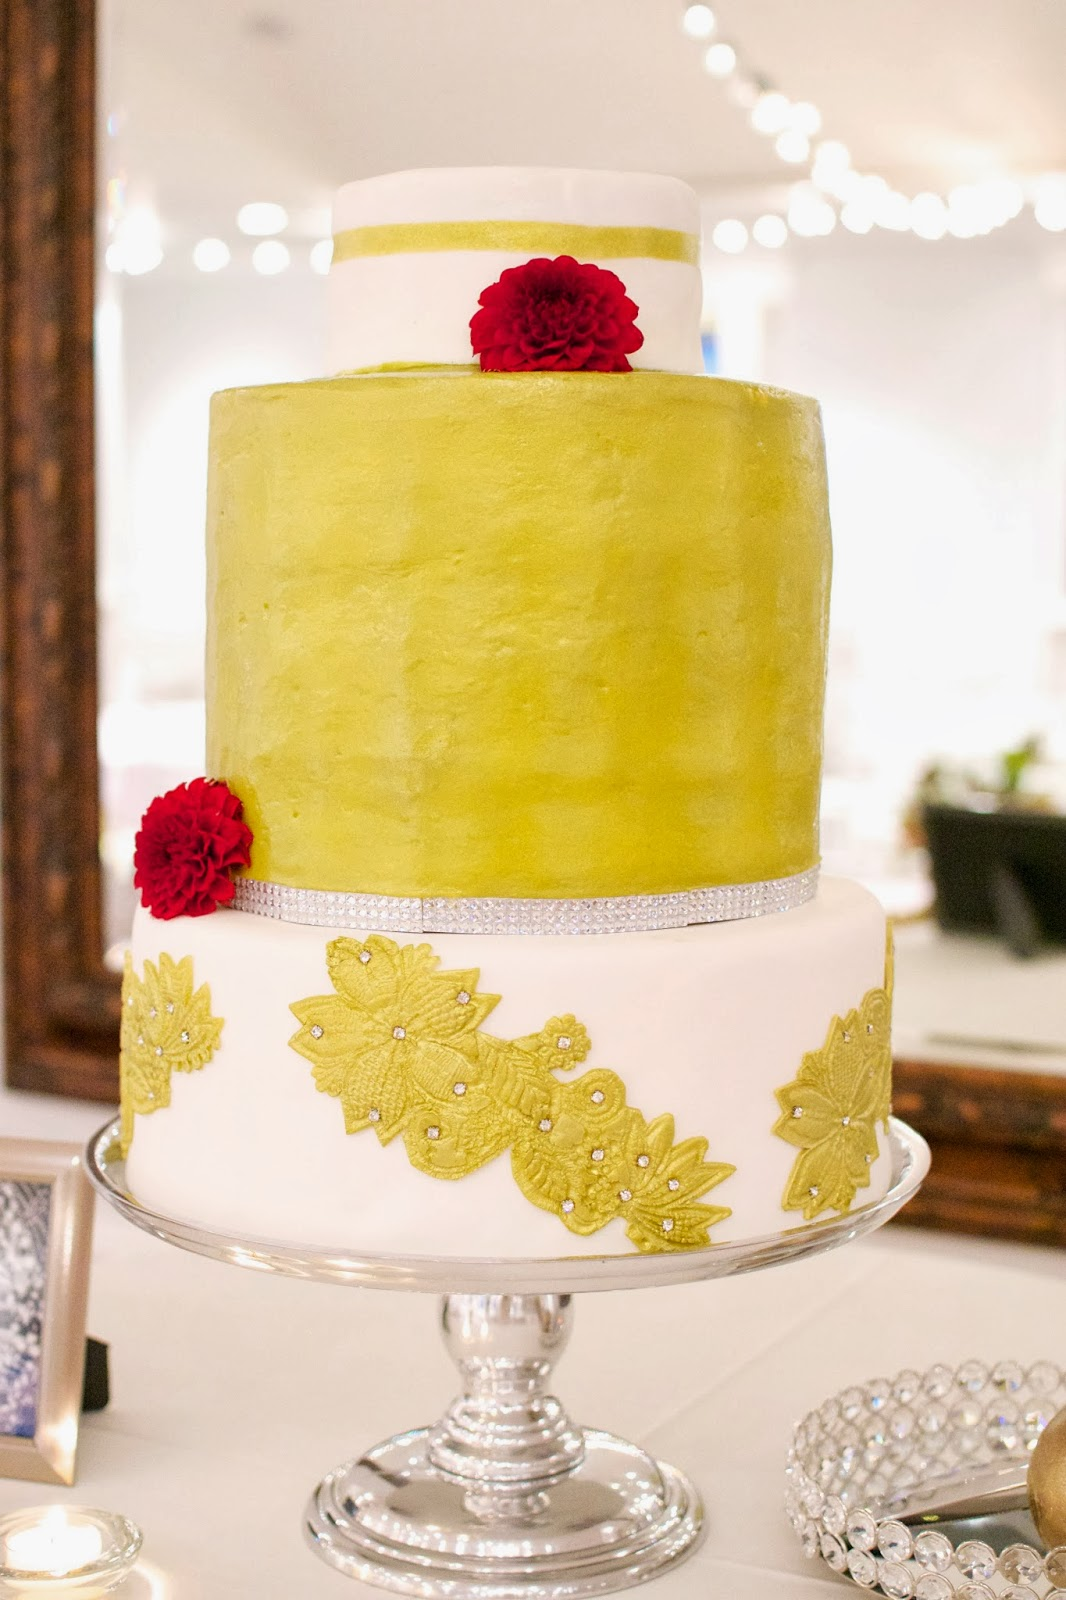 the mighty baker gold wedding cake delicious dessert catering. Black Bedroom Furniture Sets. Home Design Ideas